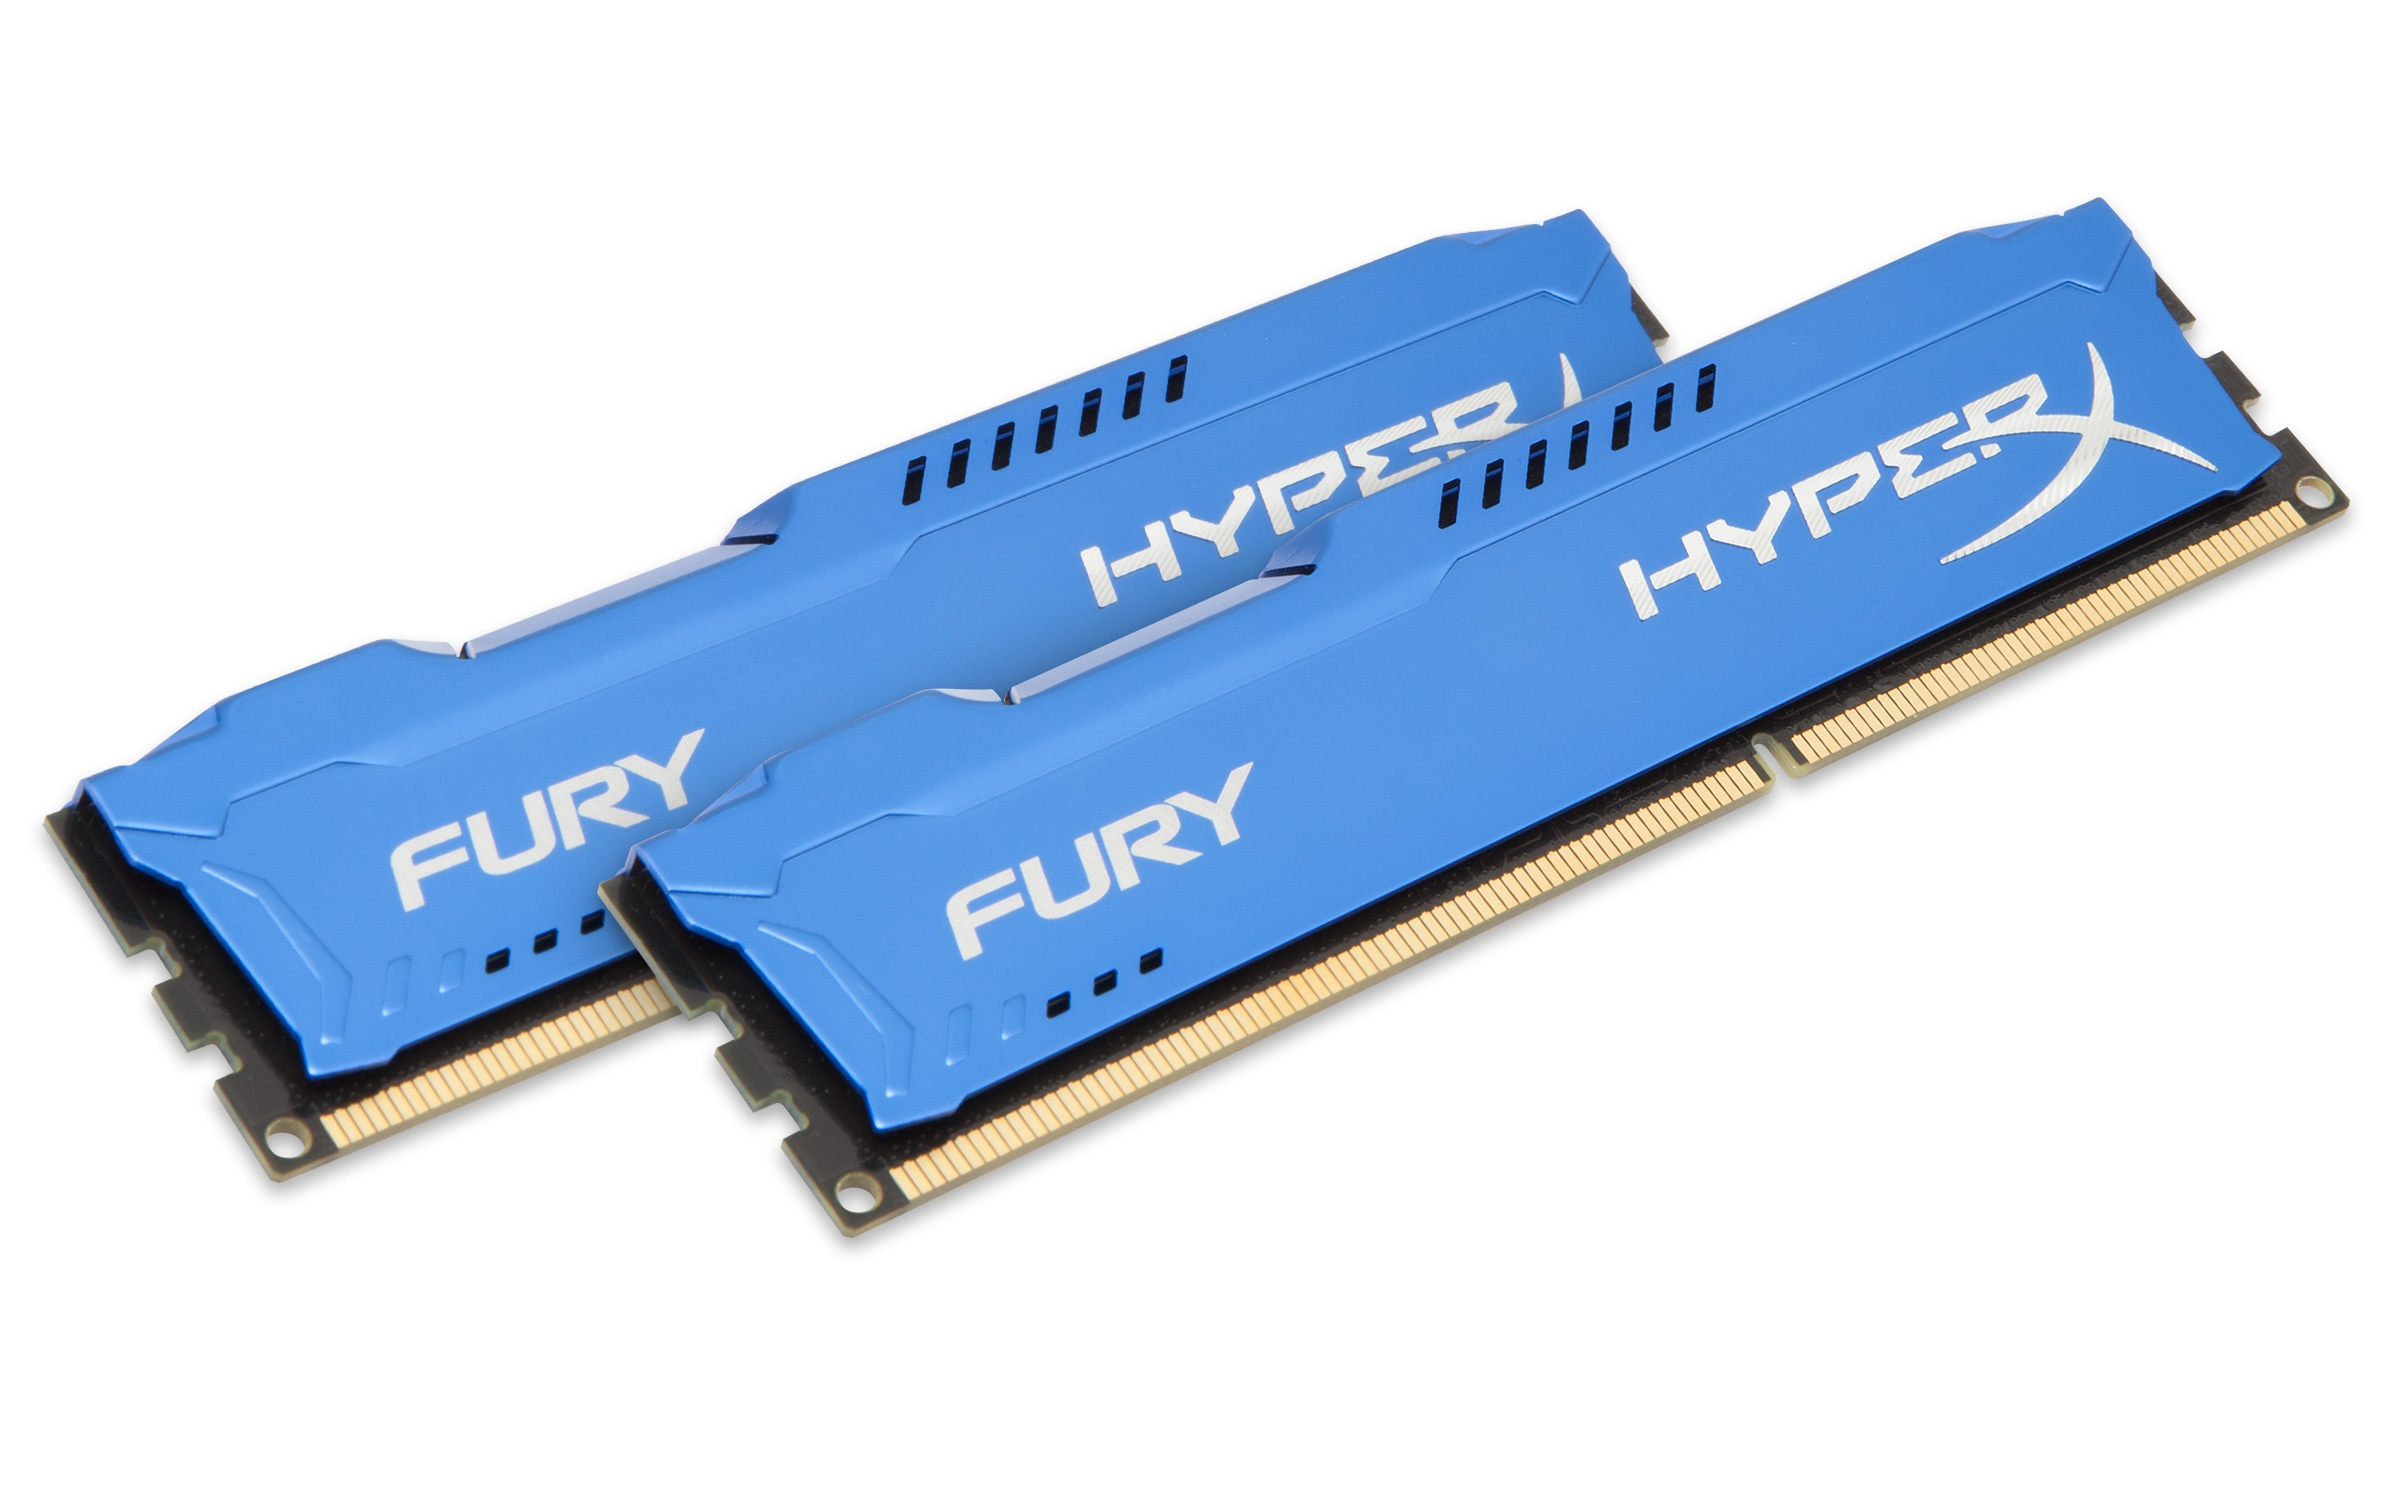 price of 16GB 1333MHz DDR3 CL9 DIMM (Kit of 2) HyperX FURY Blue on ShopHub | ecommerce, price check, start a business, sell online